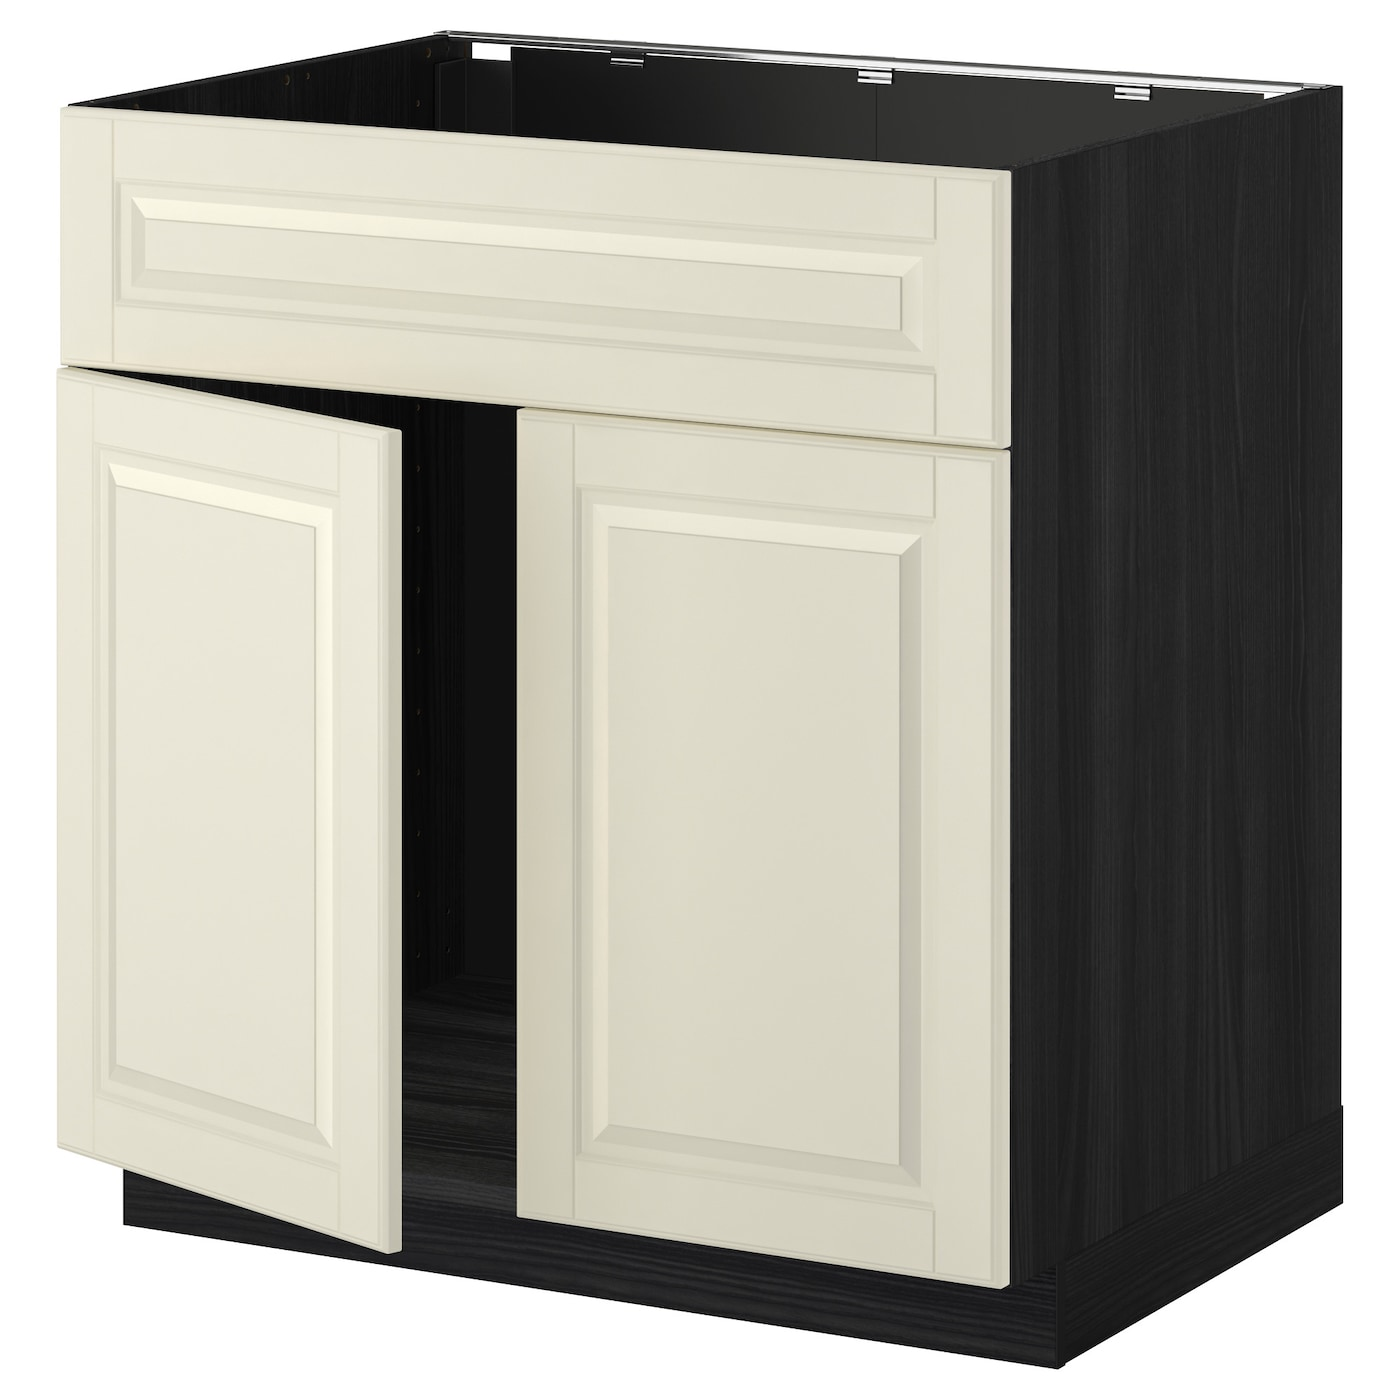 Metod base cabinet f sink w 2 doors front black bodbyn off for White cabinets with black doors